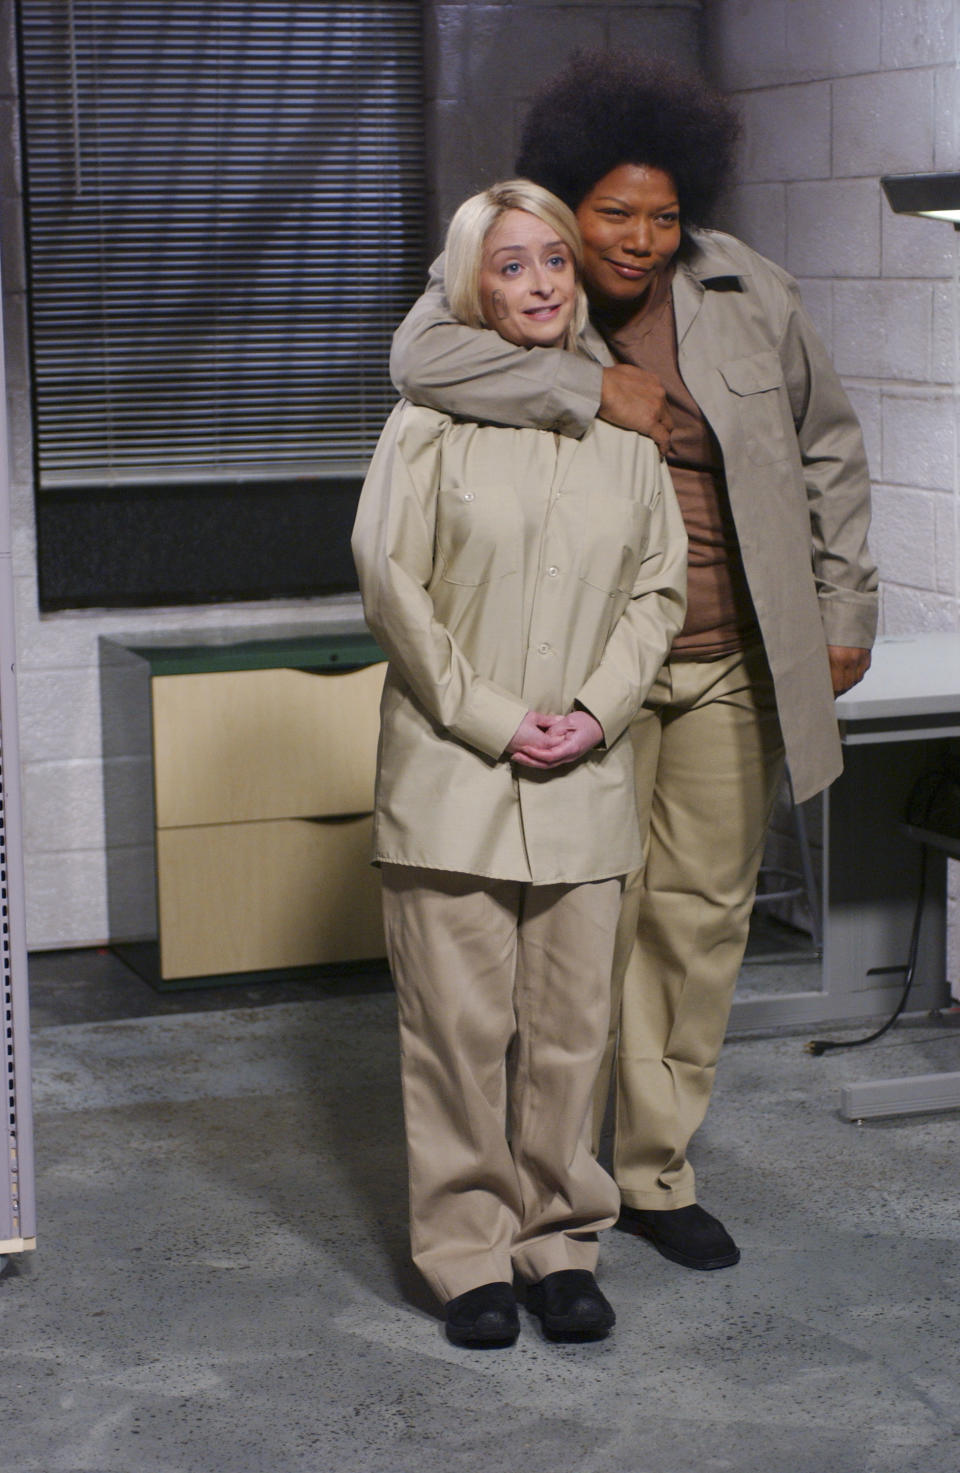 """SATURDAY NIGHT LIVE -- Episode 2 -- Aired 10/09/2004 -- Pictured: (l-r) Rachel Dratch as Martha Stewart, Queen Latifah as Kinyata Williams during """"Weekend Update""""  (Photo by Mary Ellen Matthews/NBCU Photo Bank/NBCUniversal via Getty Images via Getty Images)"""